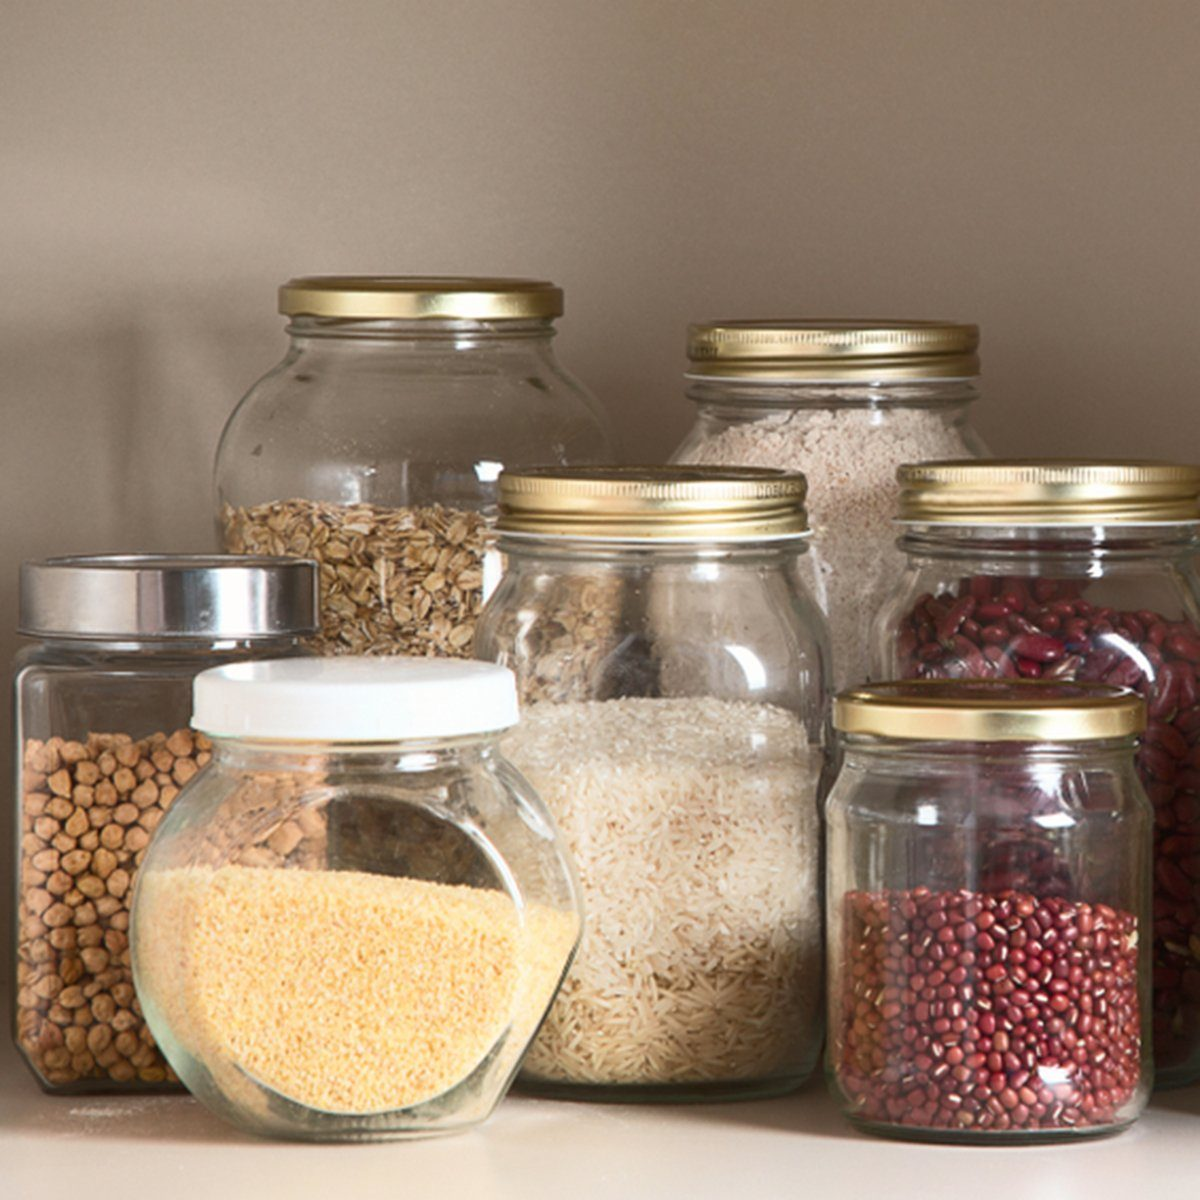 Collection of grain products in storage jars in pantry